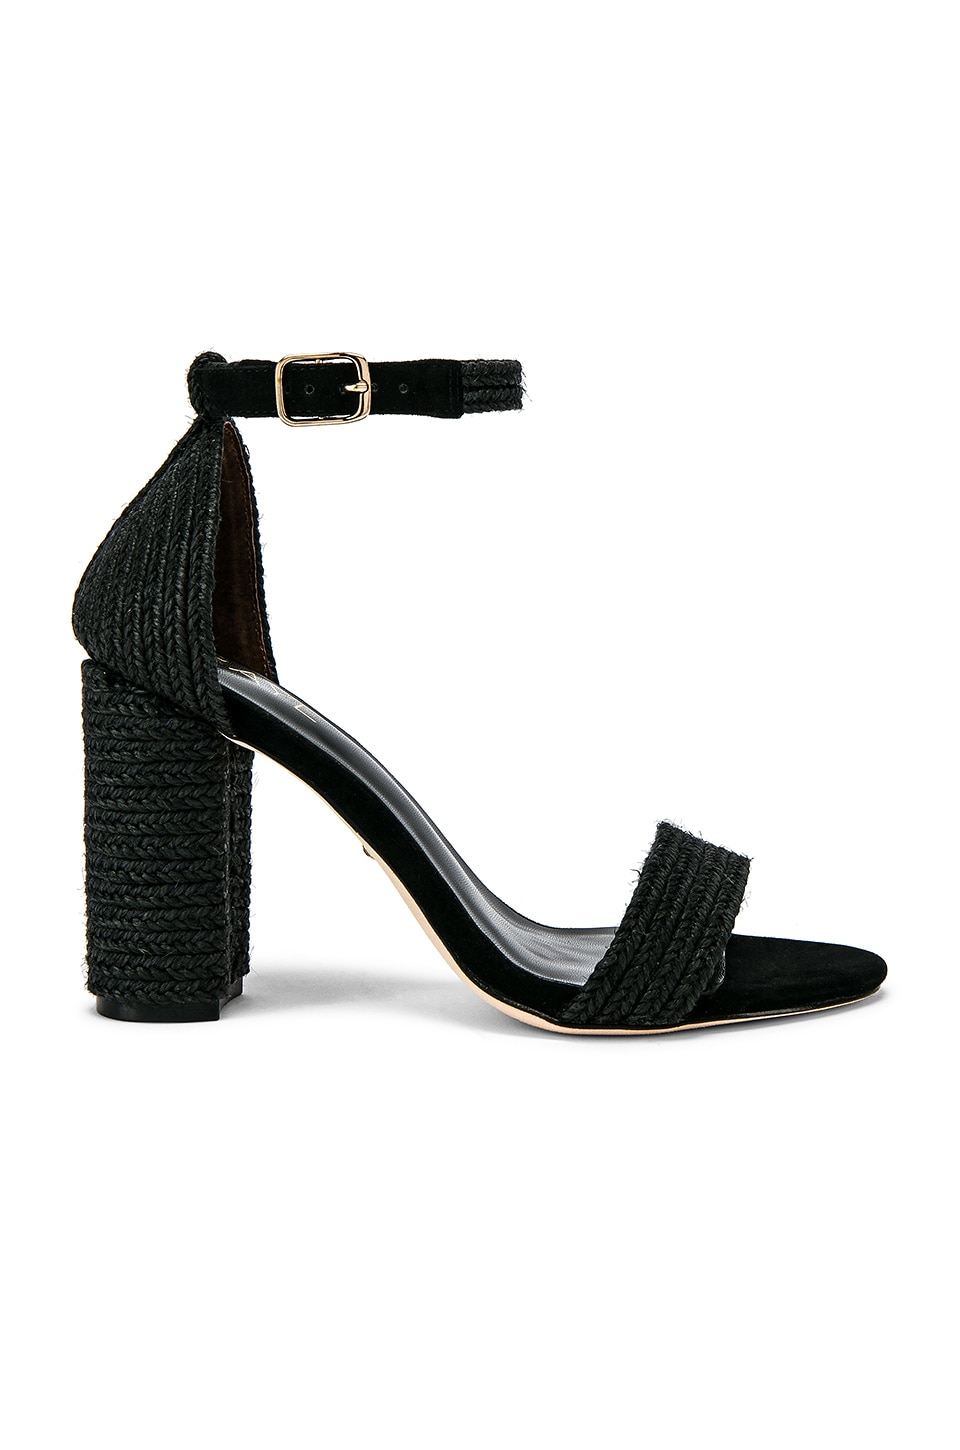 RAYE Bliss Heel in Black